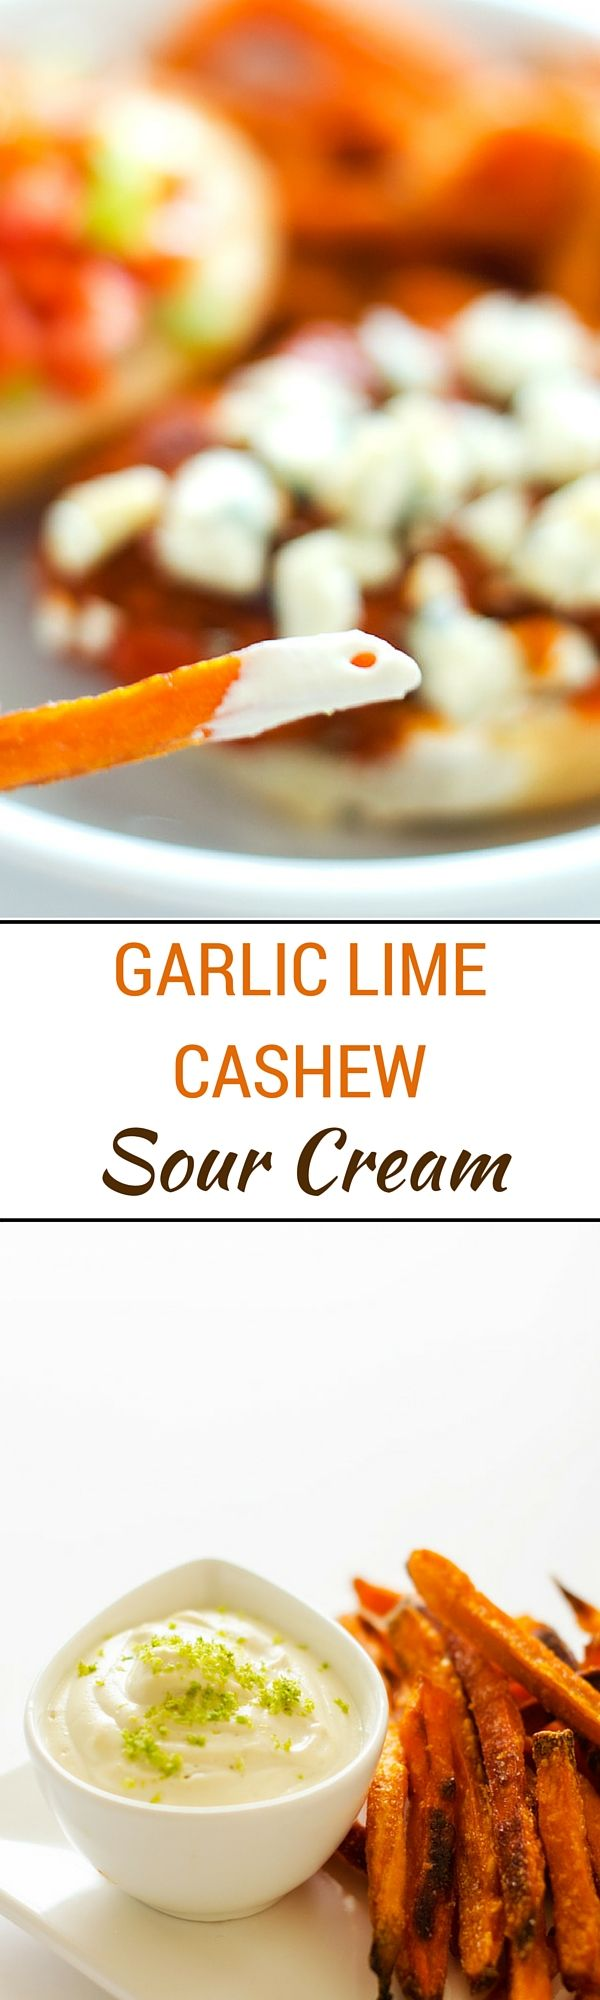 Garlic Lime Cashew Sour Cream - You won't miss the dairy in this healthier alternative to sour cream. Dairy-Free, Gluten-Free & Vegan. via @wendypolisi